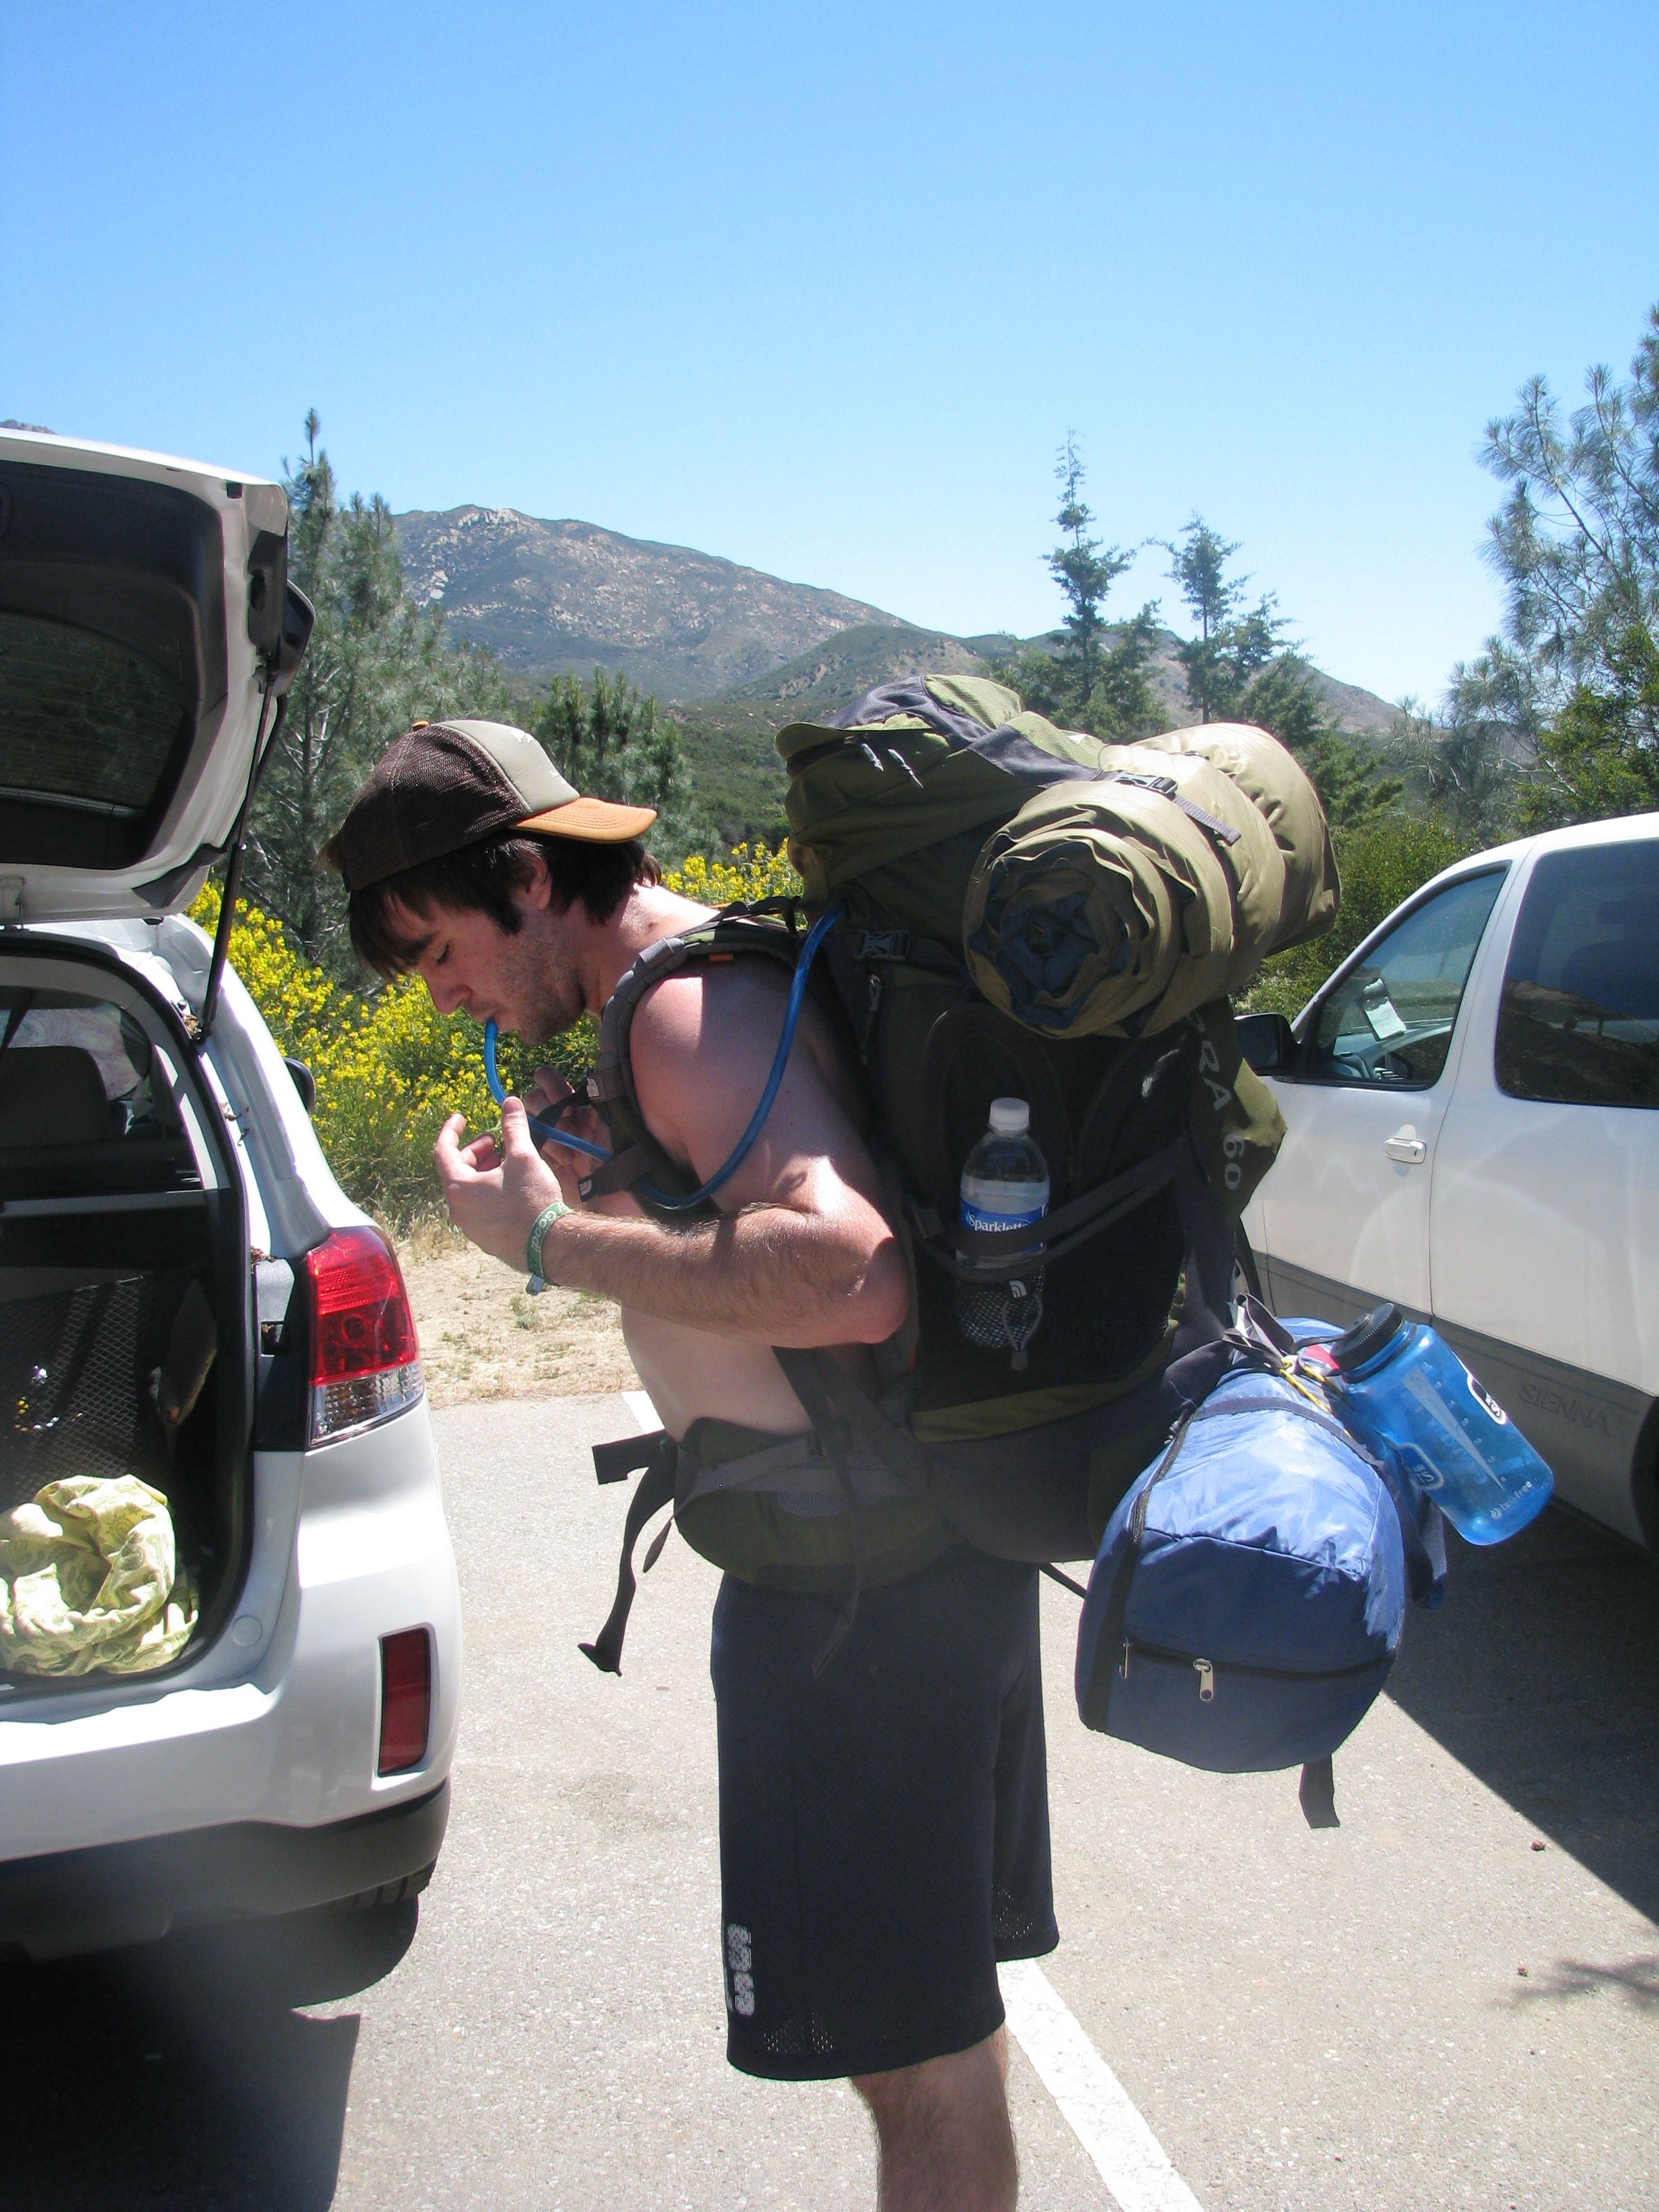 Took my mom backpacking in Ojai for her first time  Took her